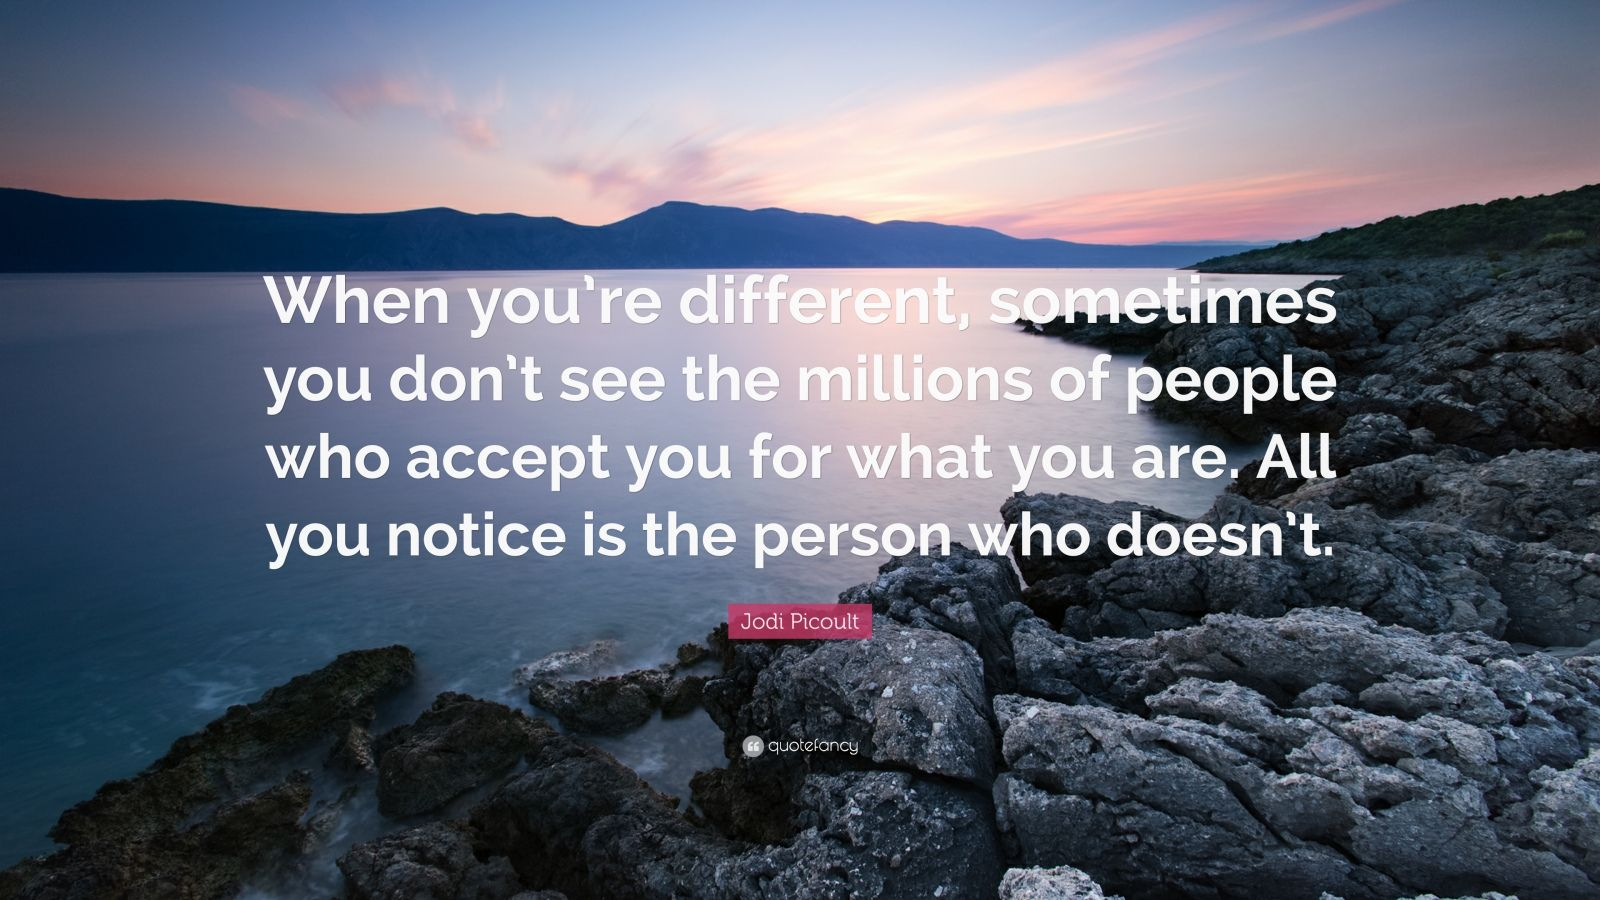 """Jodi Picoult Quote: """"When you're different, sometimes you don't see the millions of people who accept you for what you are. All you notice is the person who doesn't."""""""